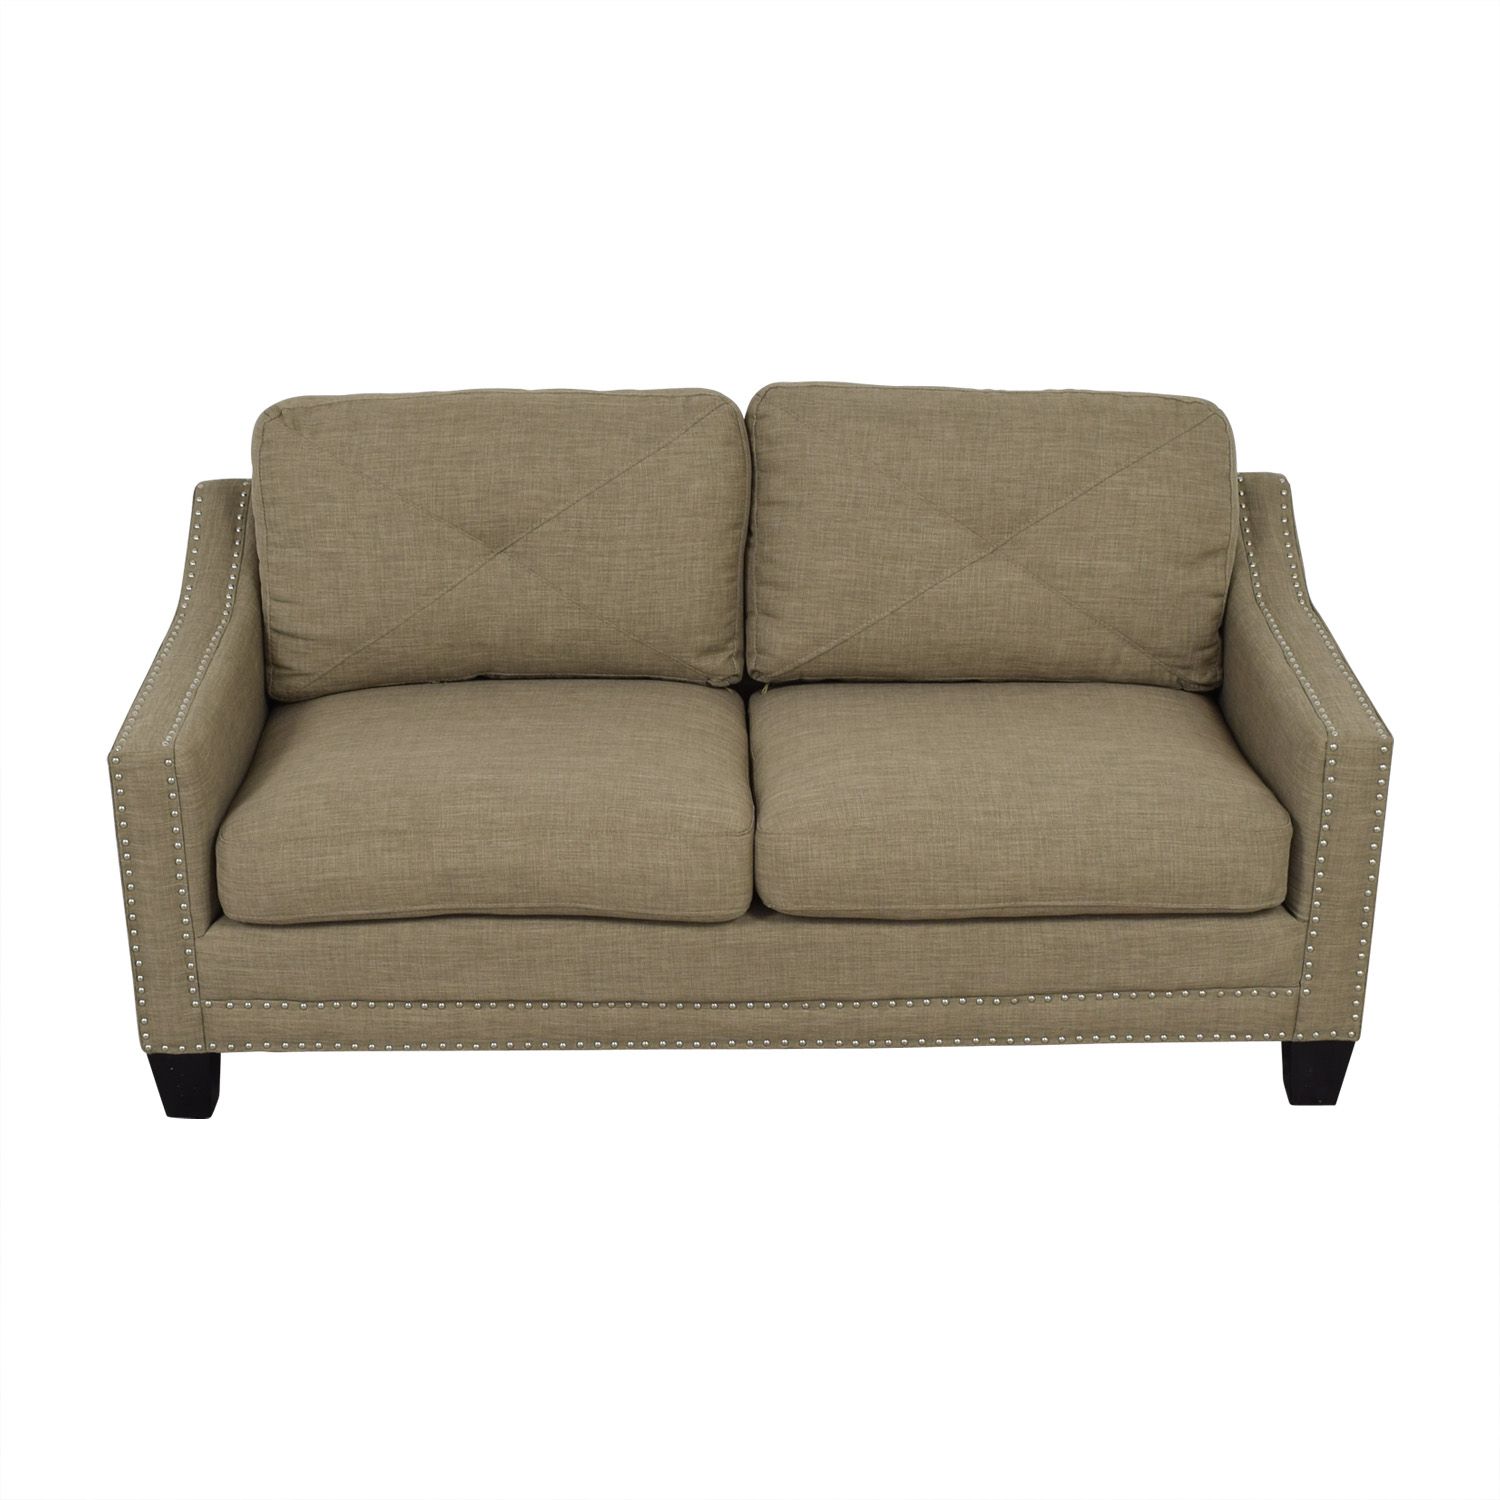 Bob's Furniture Bob's Furniture Tan Two-Cushion Couch second hand